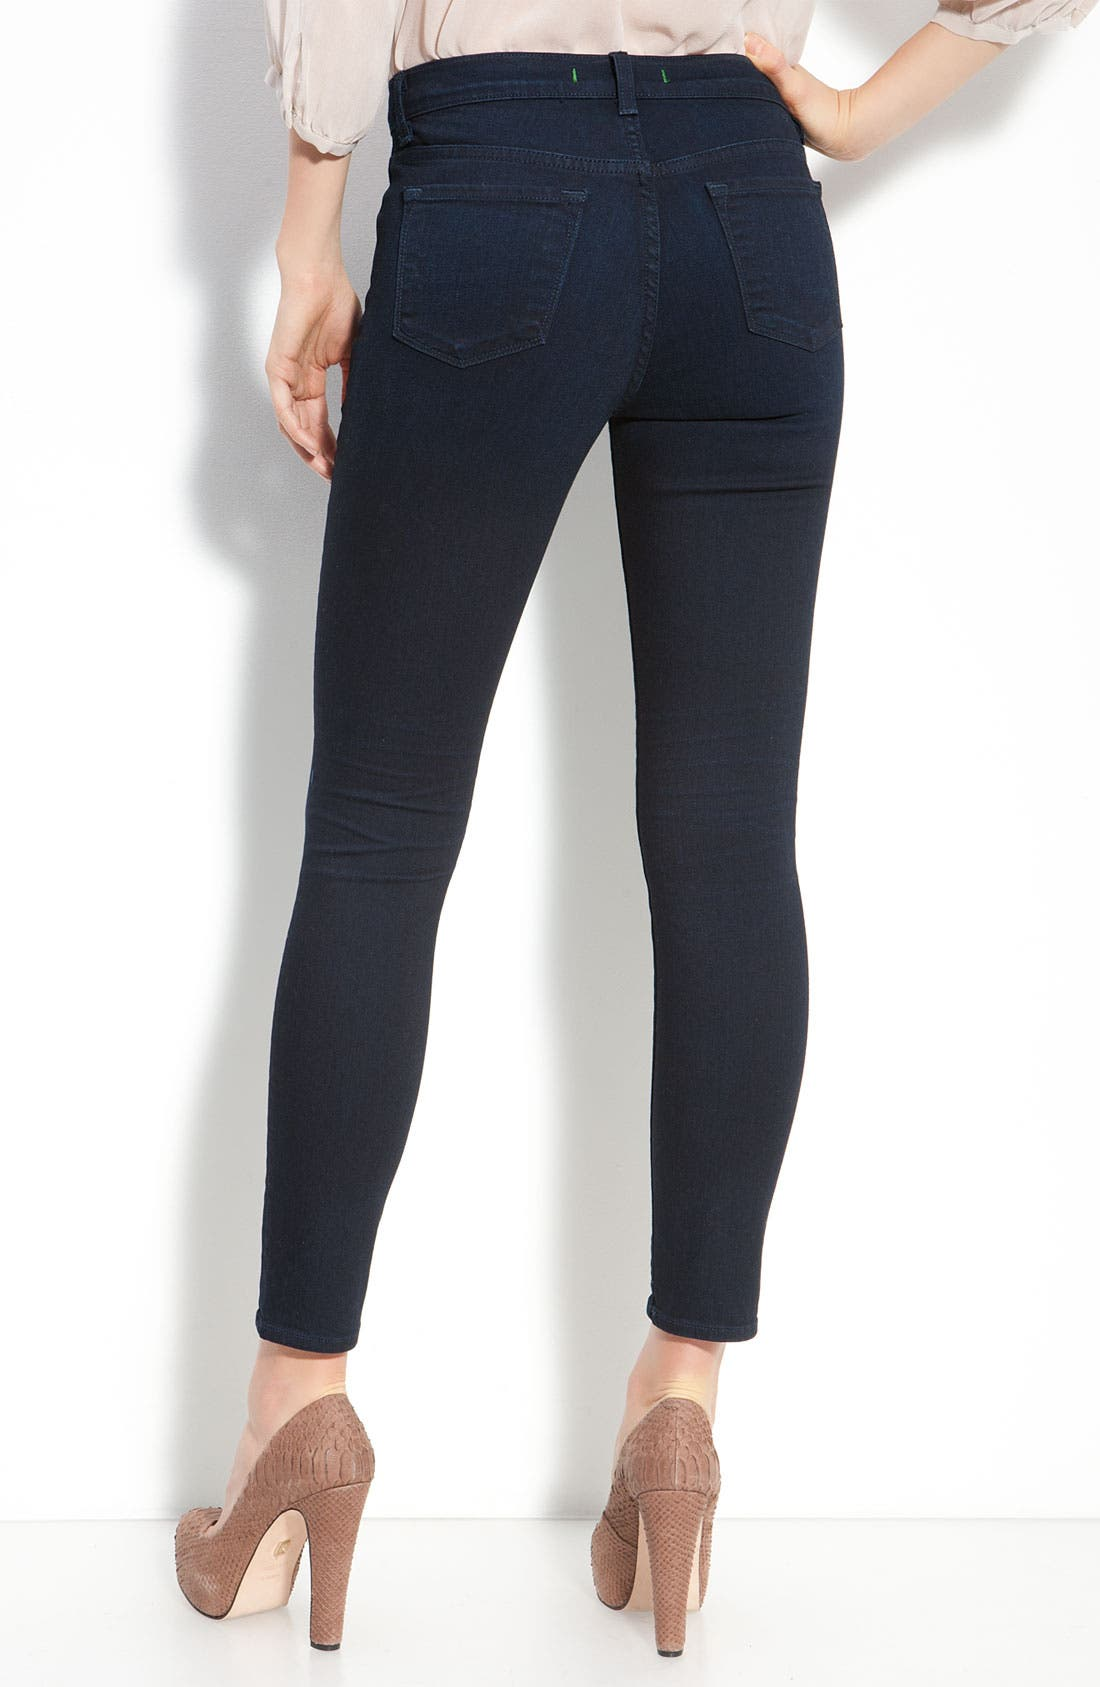 Alternate Image 1 Selected - J Brand 'Maria' Ankle Jeans (Dynamite Wash)